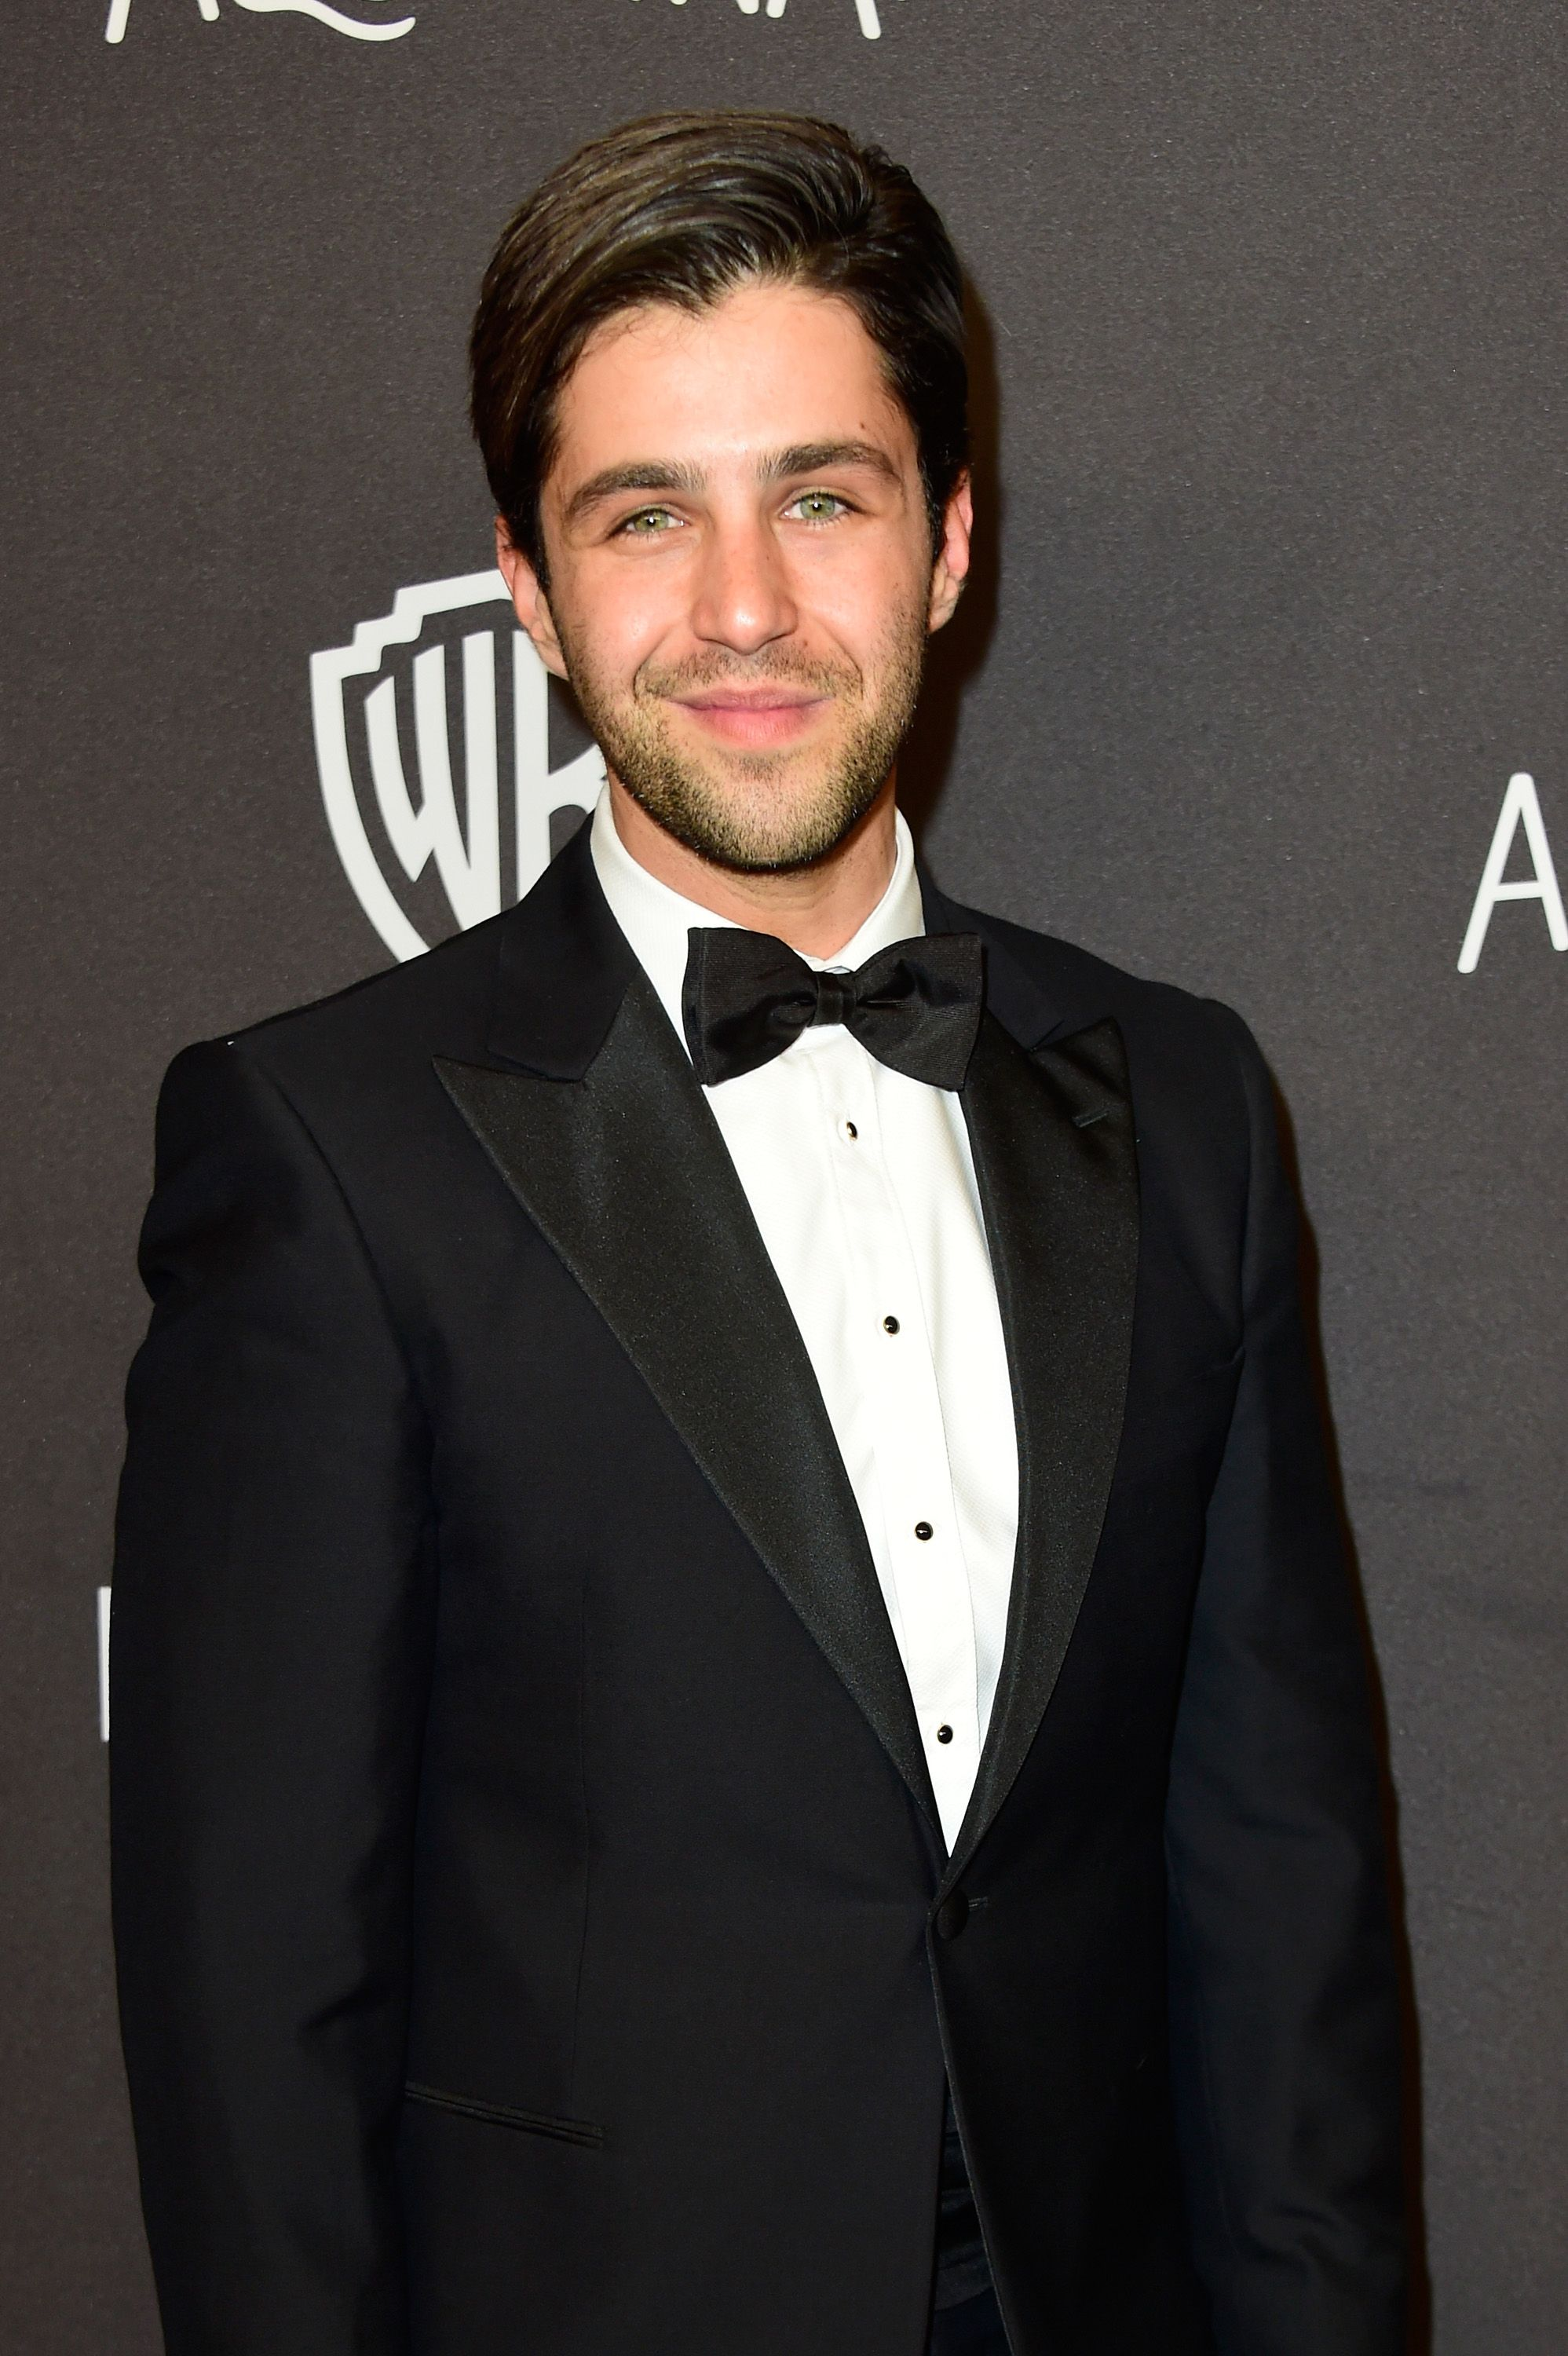 Josh Peck American Actor, Comedian, Voice Actor, Youtuber